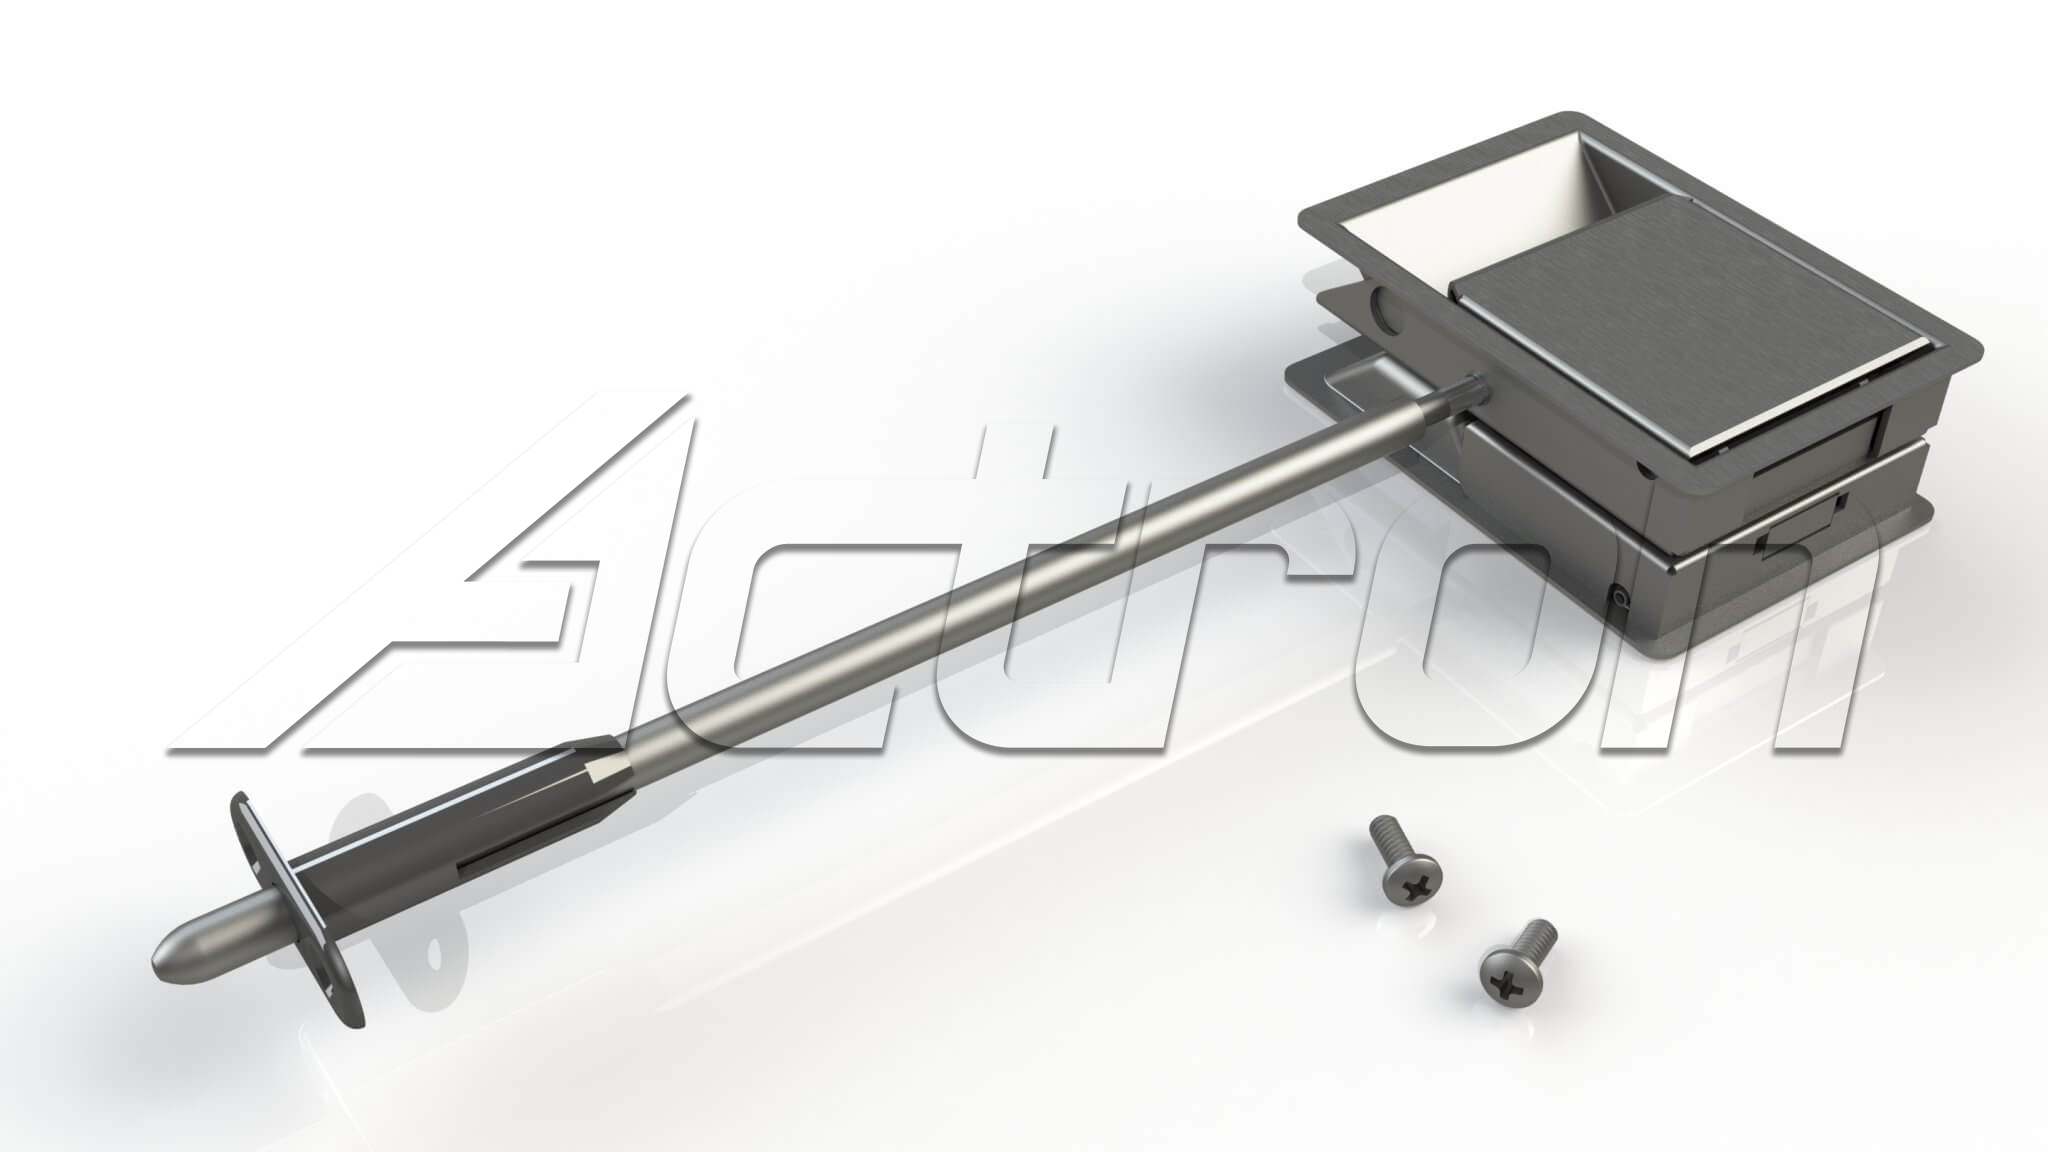 door-bolting-system-8211-paddle-4307-a39045.jpg